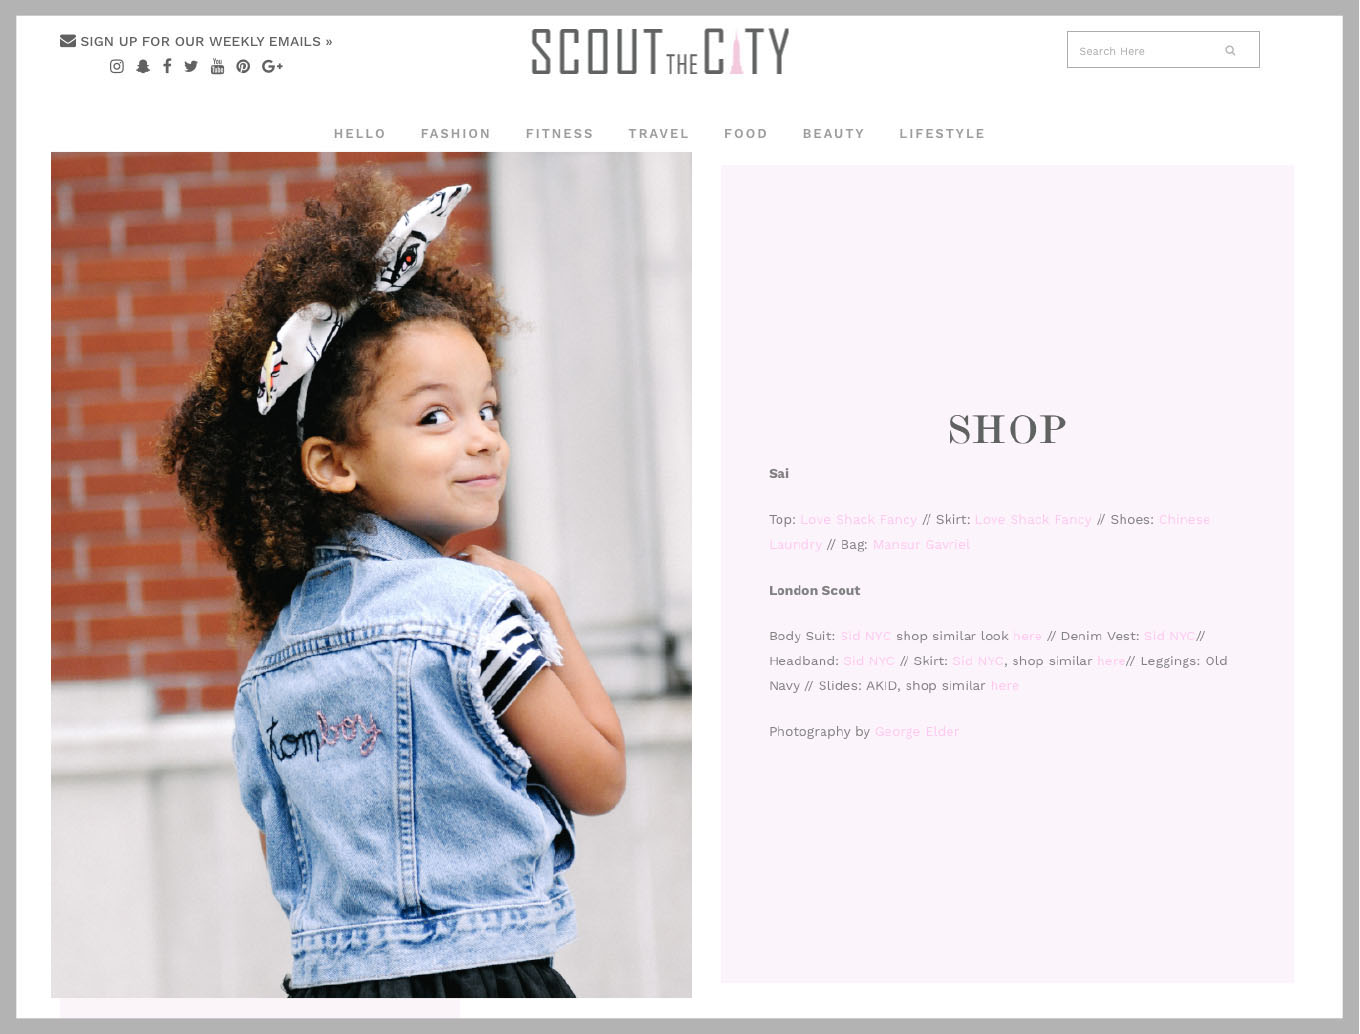 SCOUT THE CITY : London Scout in TOMBOY vintage denim vest, Olivia striped bodysuit, Fly Away headband in Warhol & tulle skirt